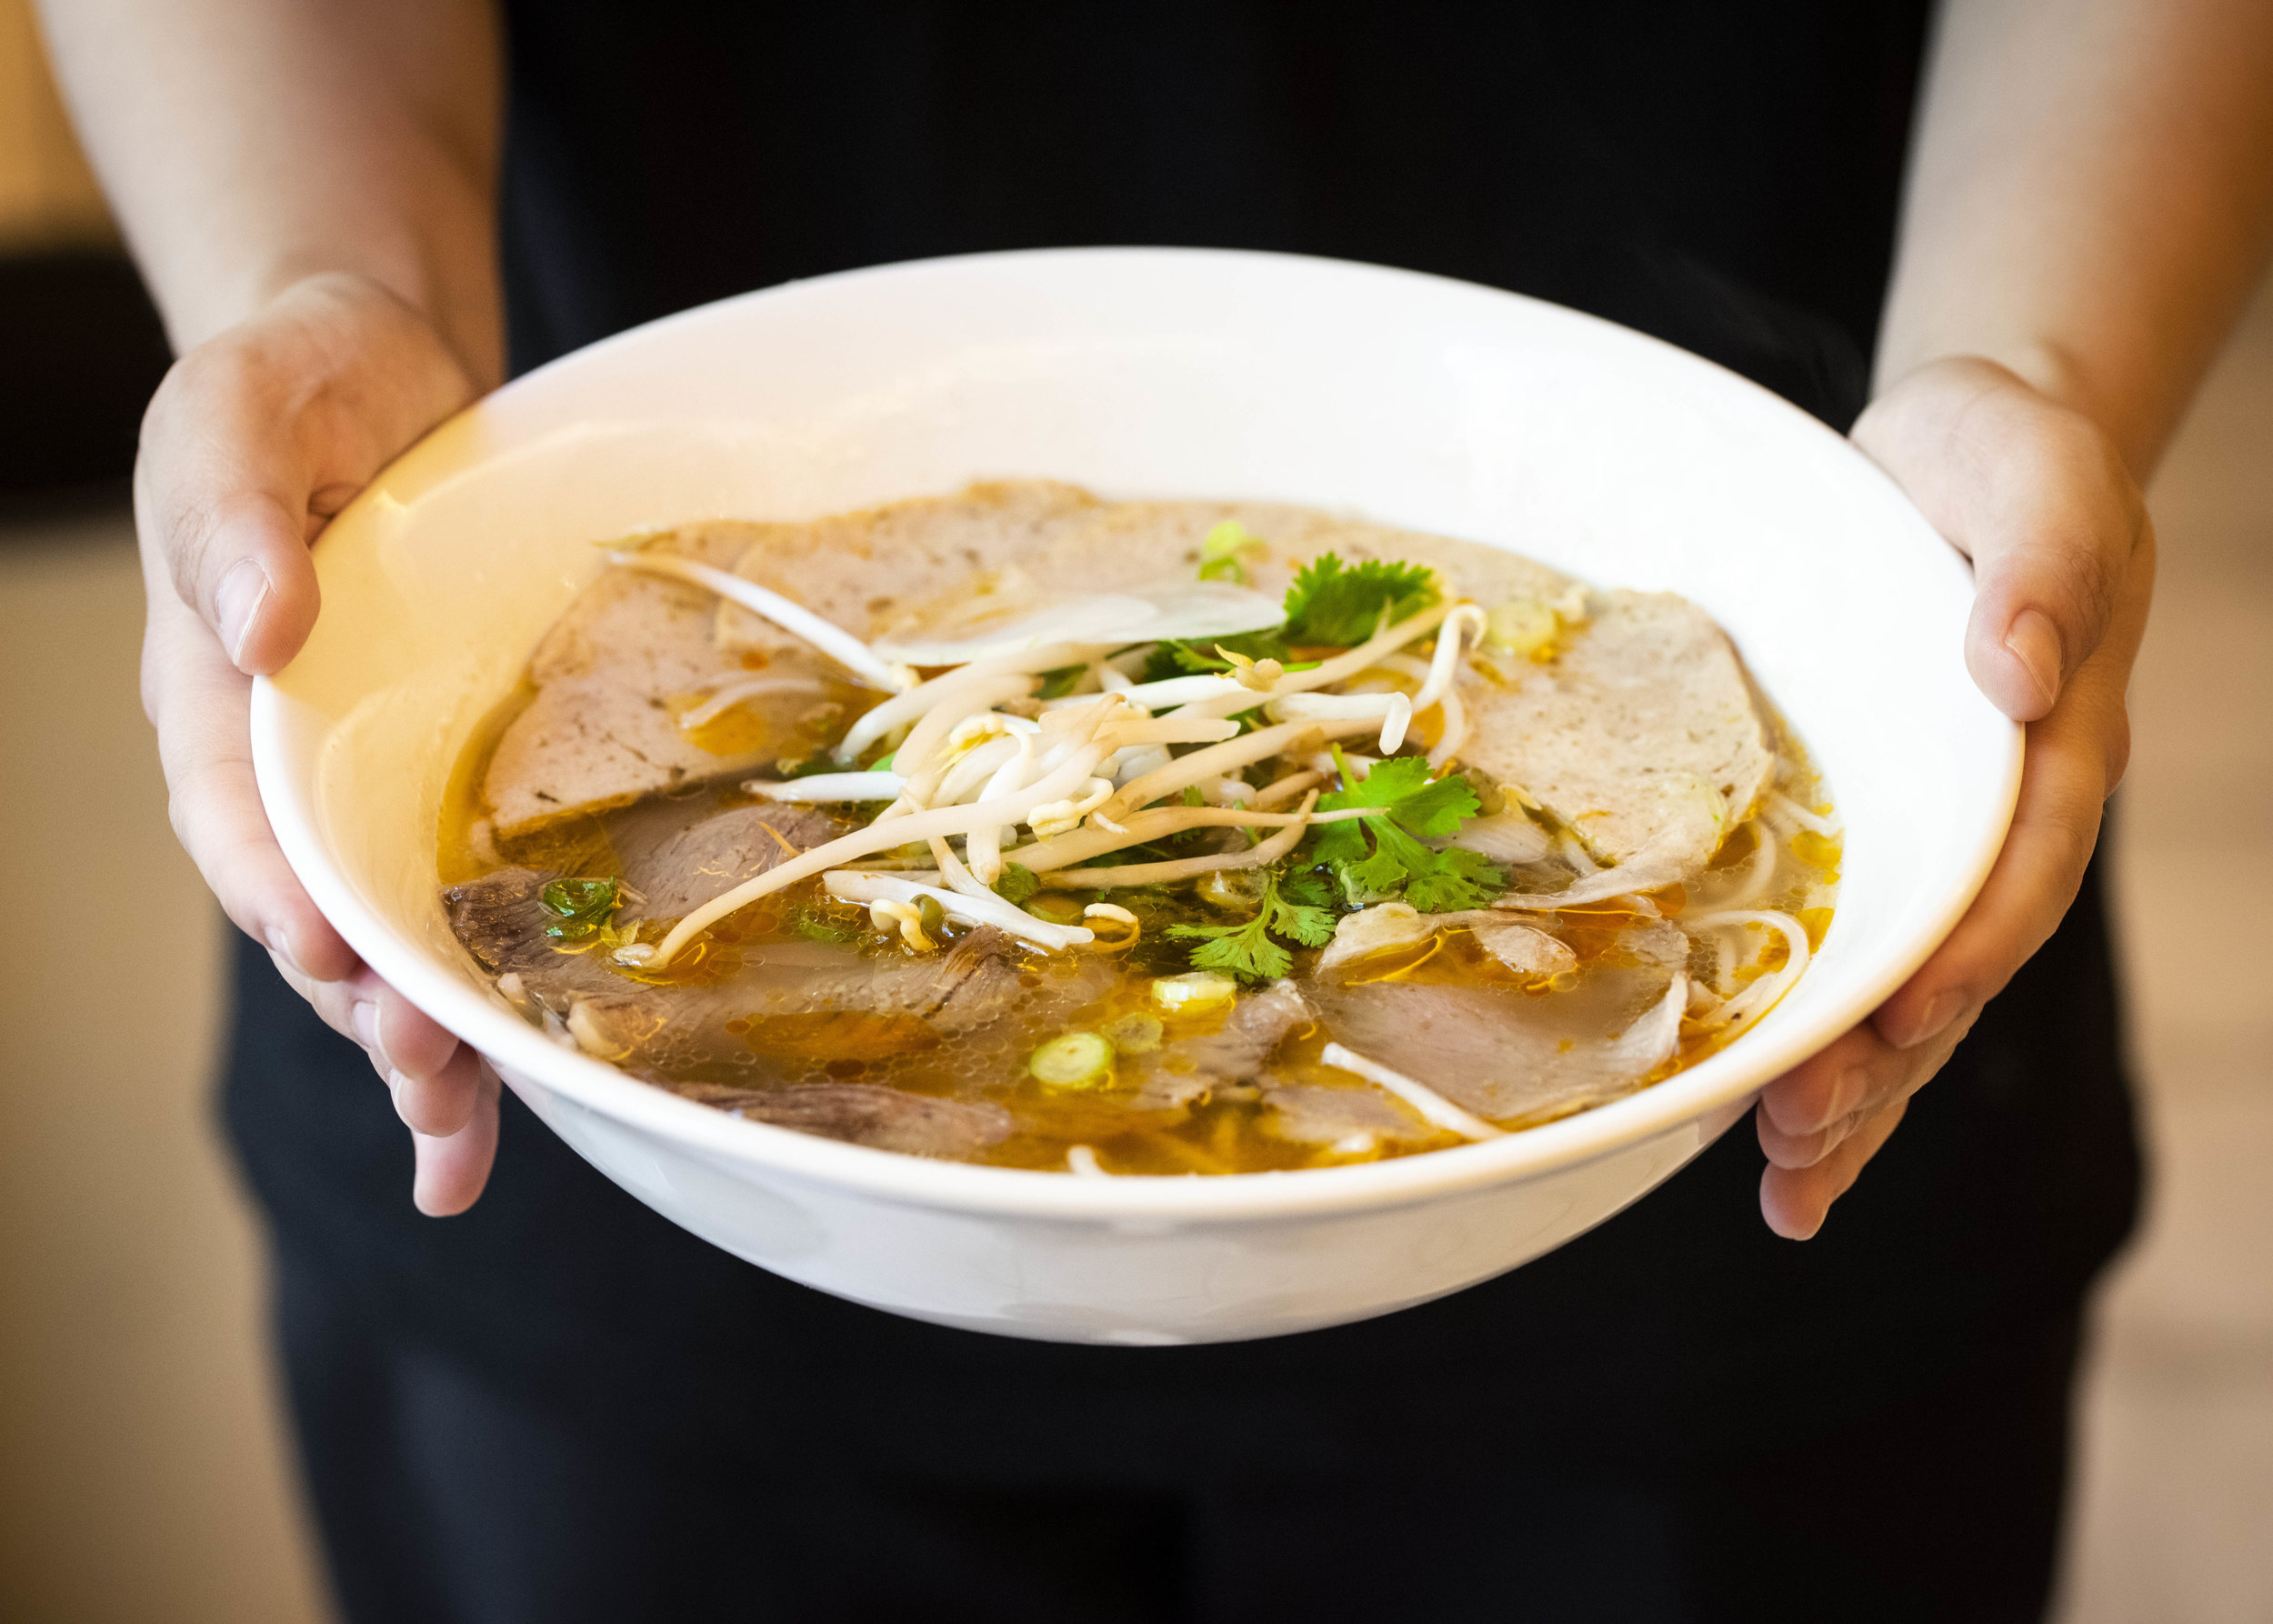 Spicy Beef Noodle Soup at Viet Kitchen, Barcelona. Photo © Barcelona Food Experience.